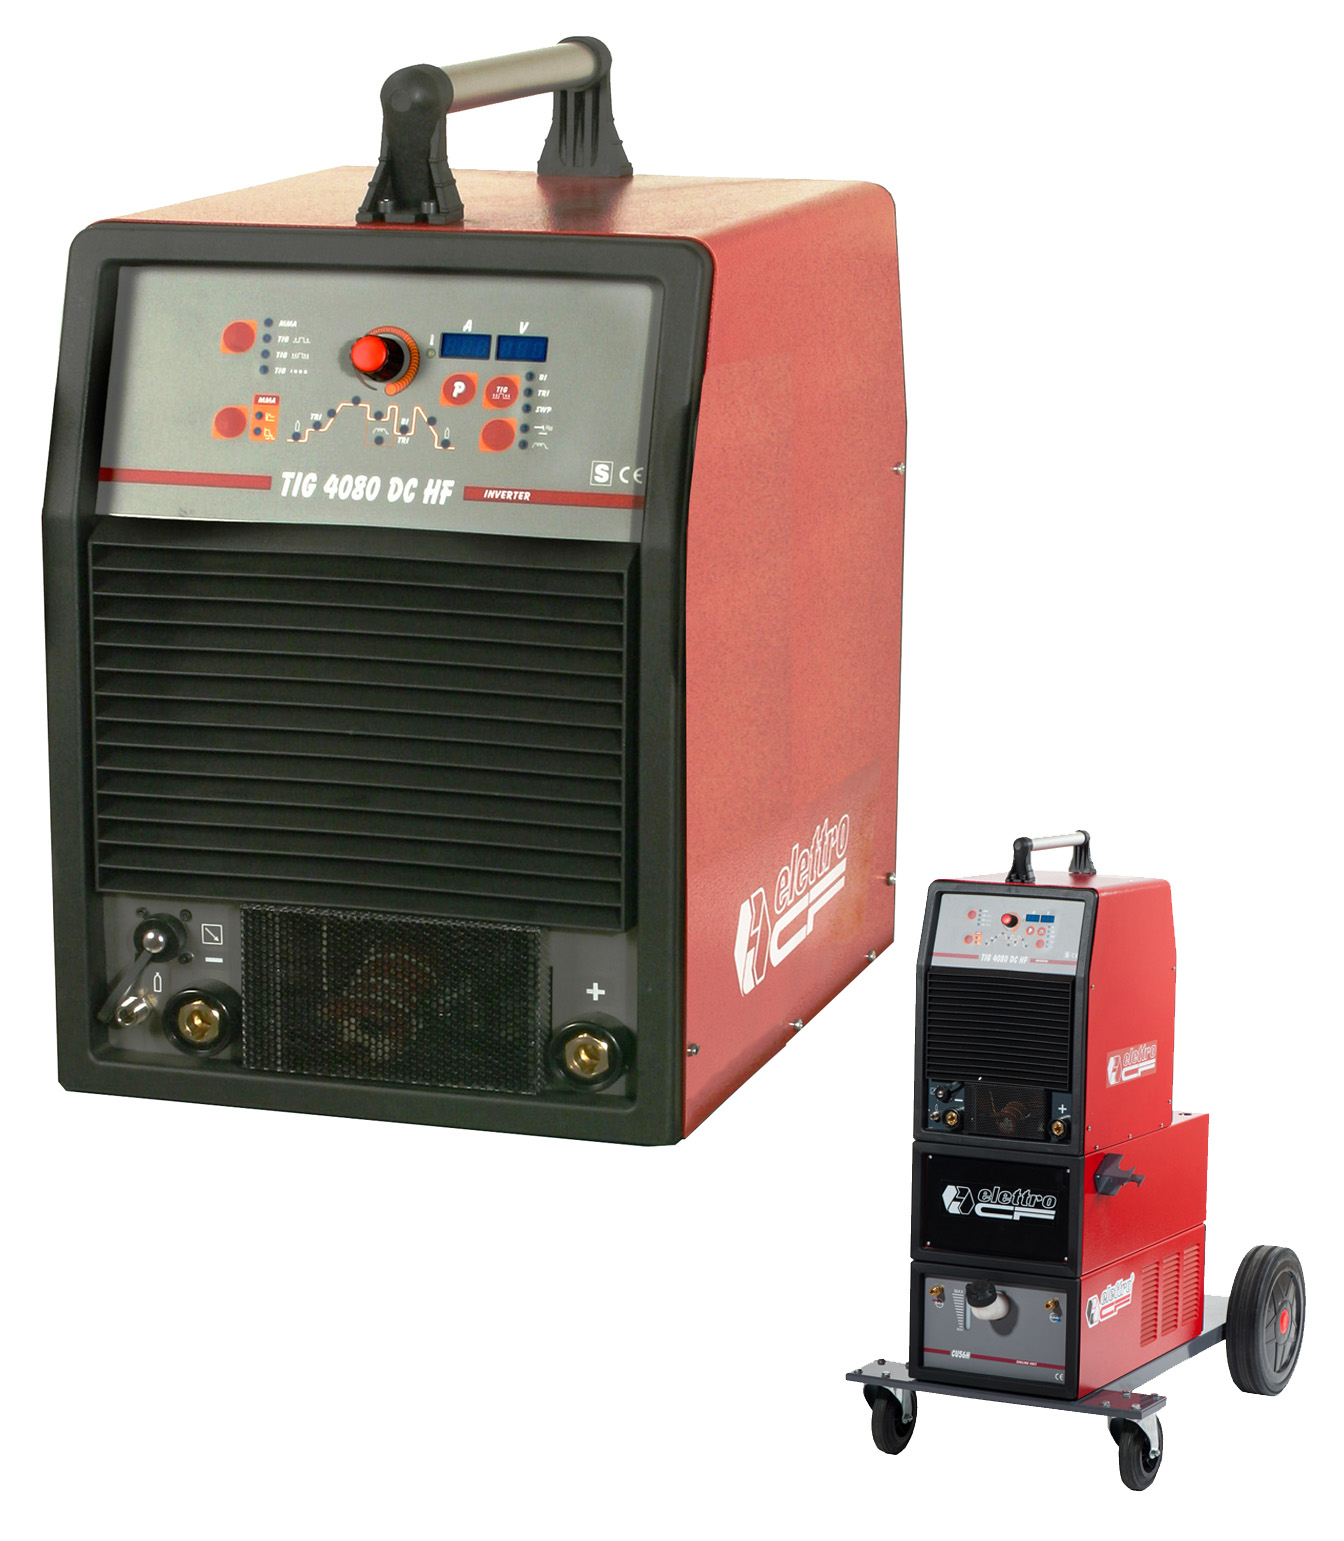 Elettro Cf S00120 Tig 4080 Dc Hf Welding Machine Diagram The Three Phase Multi Voltage Inverter Power Source For With High Frequency And Mma Smaw Is Equipped